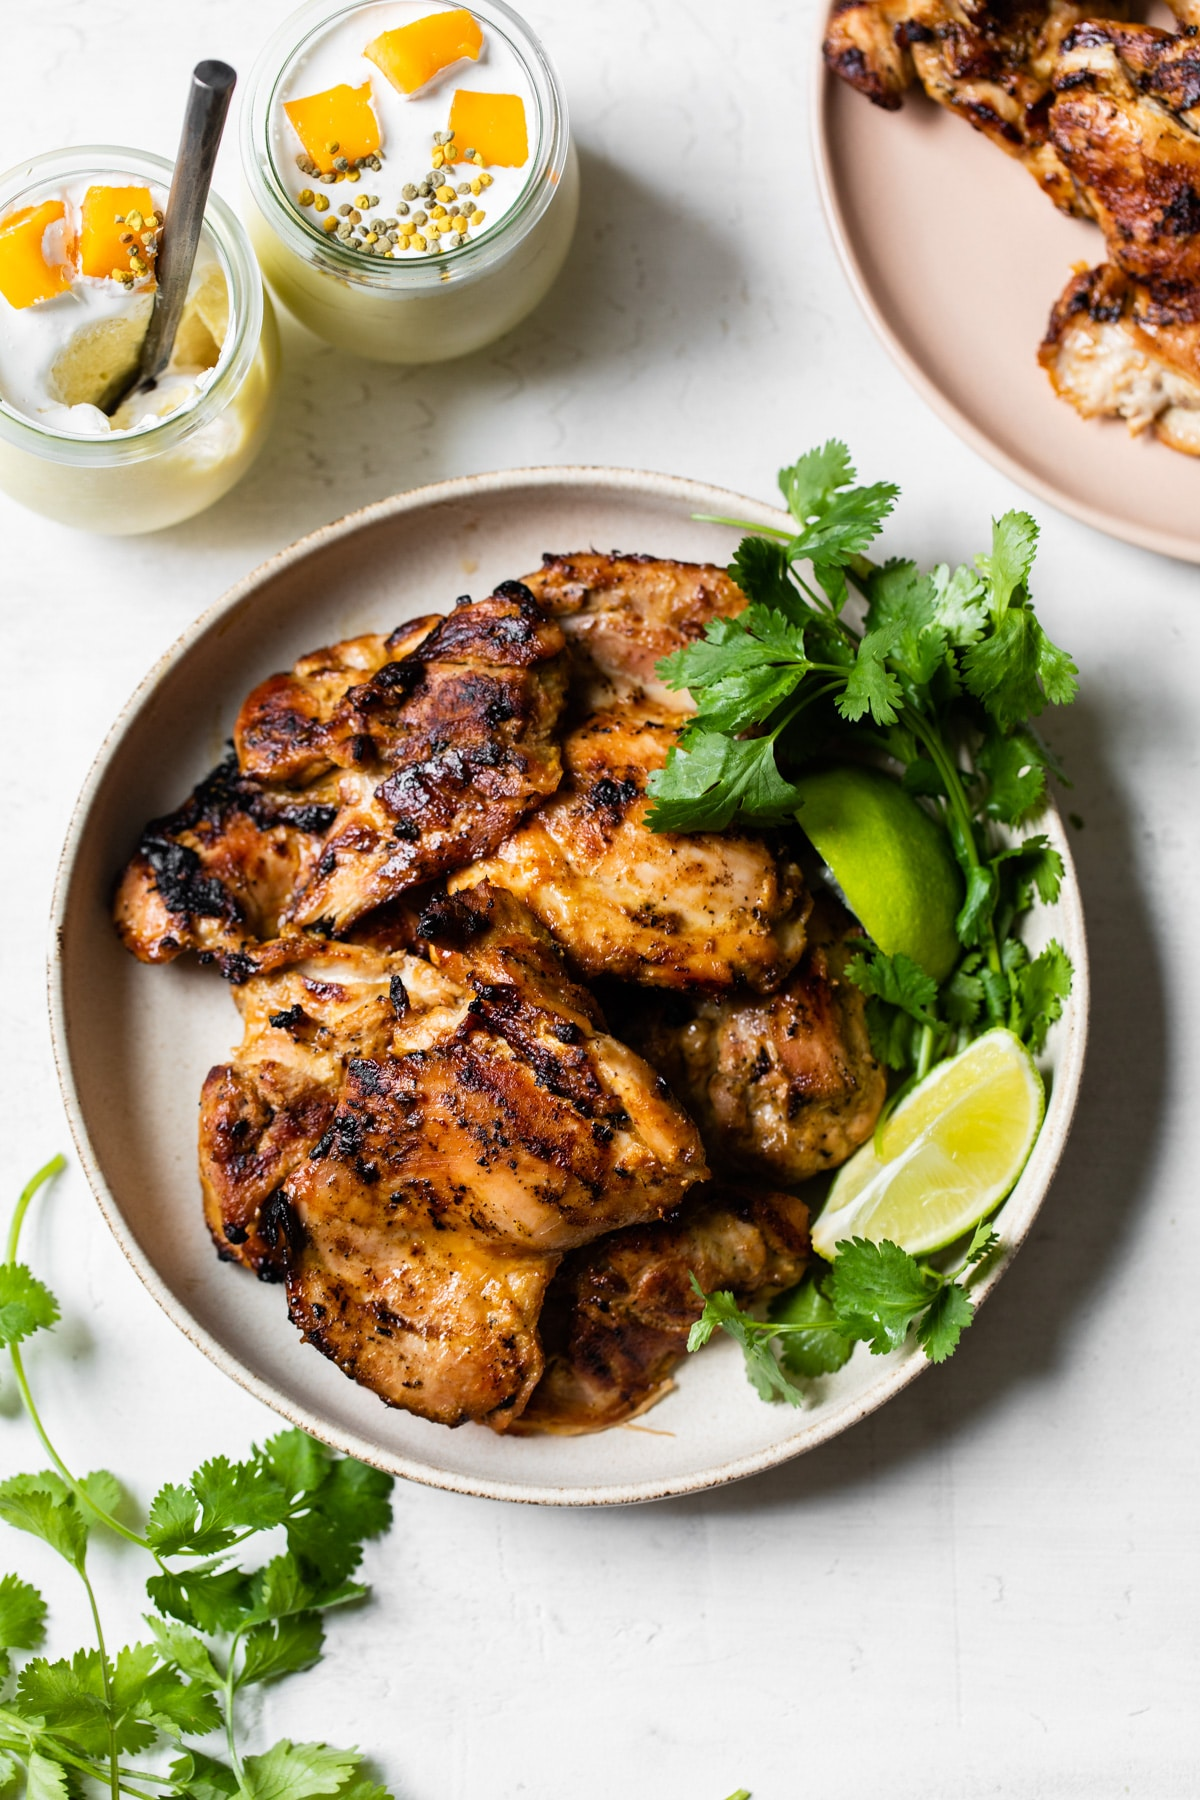 plate of grilled chicken